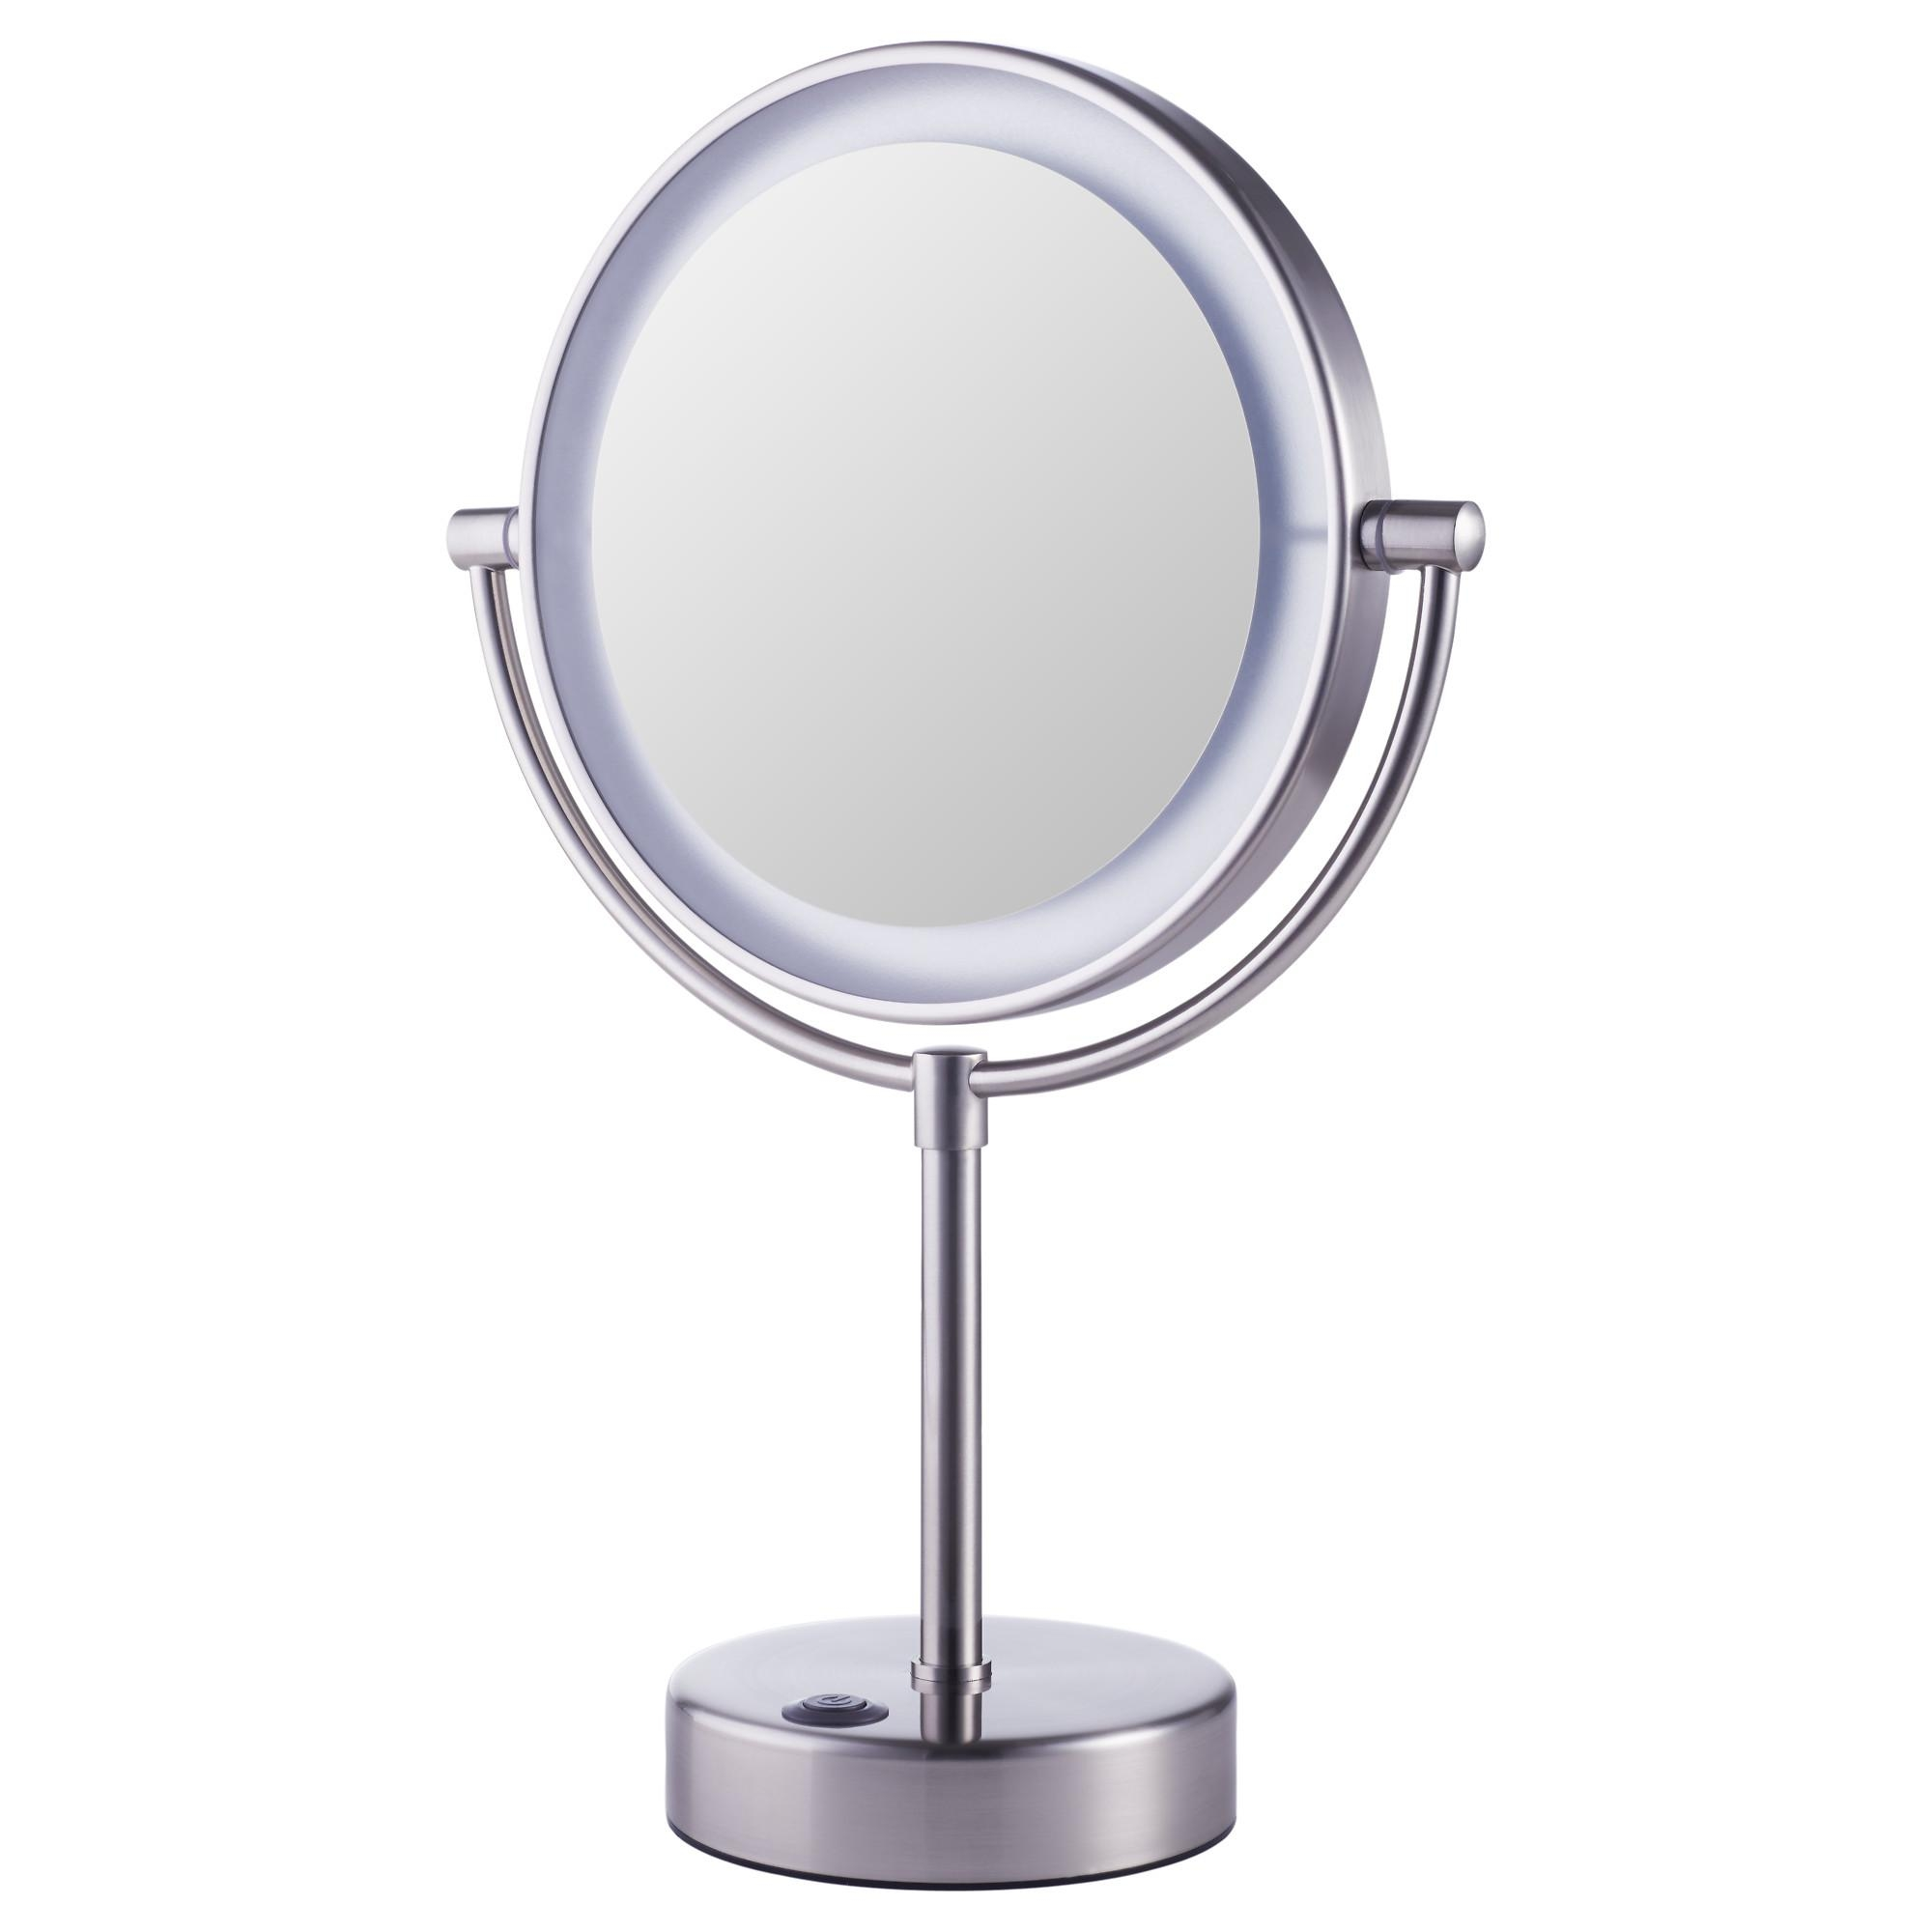 Kaitum Mirror With Built In Light – Ikea Intended For Vanity Mirrors With Built In Lights (Image 17 of 20)